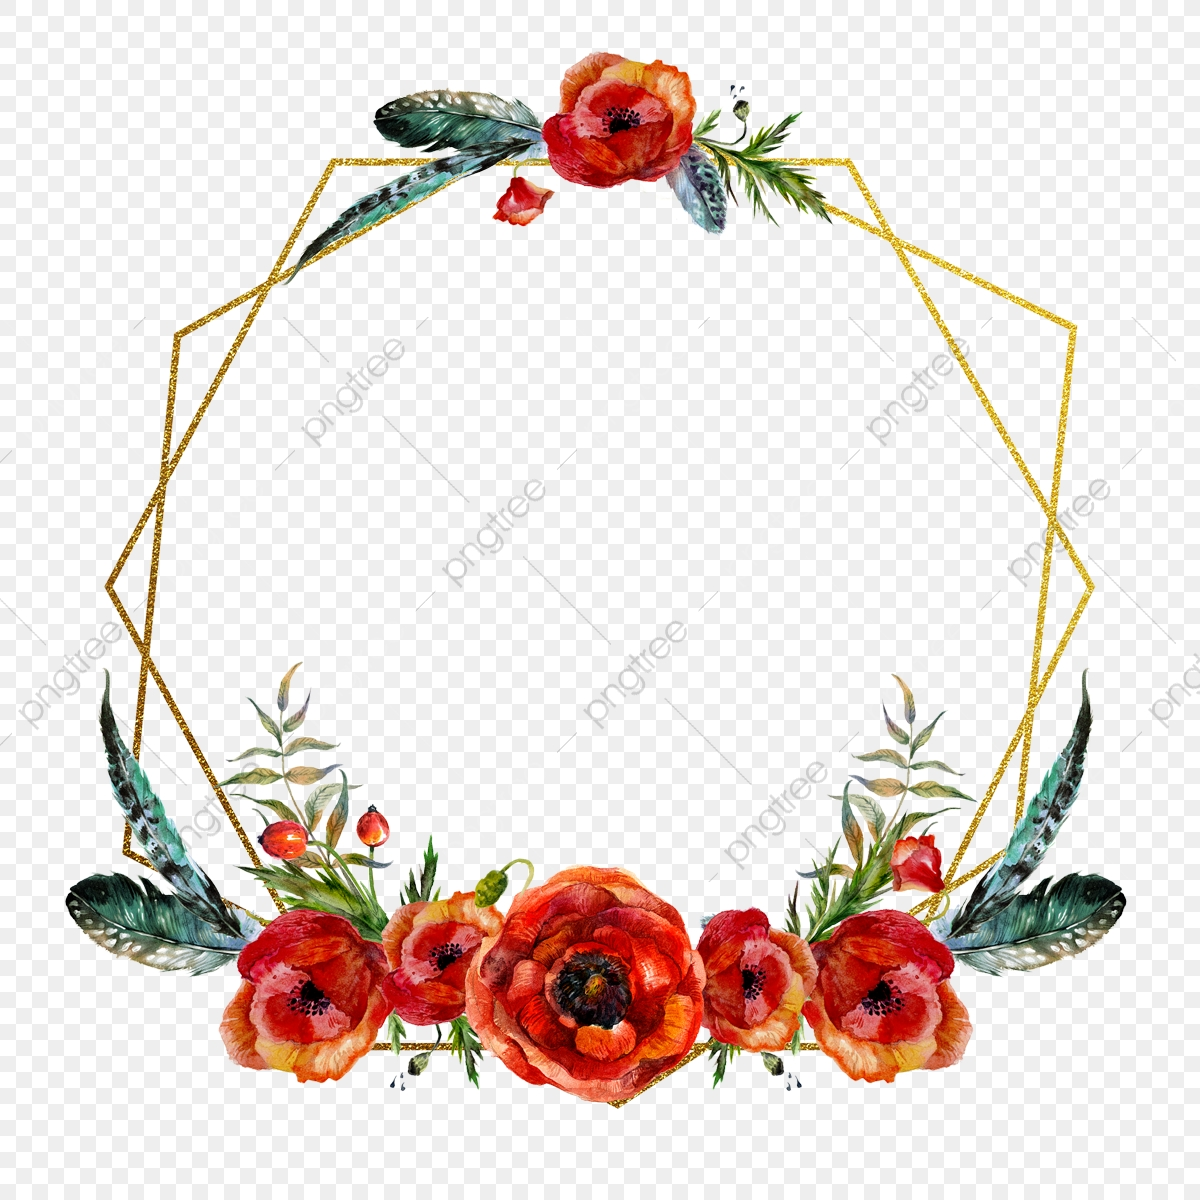 red flower irregular frame red flower red flower frame png transparent clipart image and psd file for free download https pngtree com freepng red flower irregular frame 4008892 html